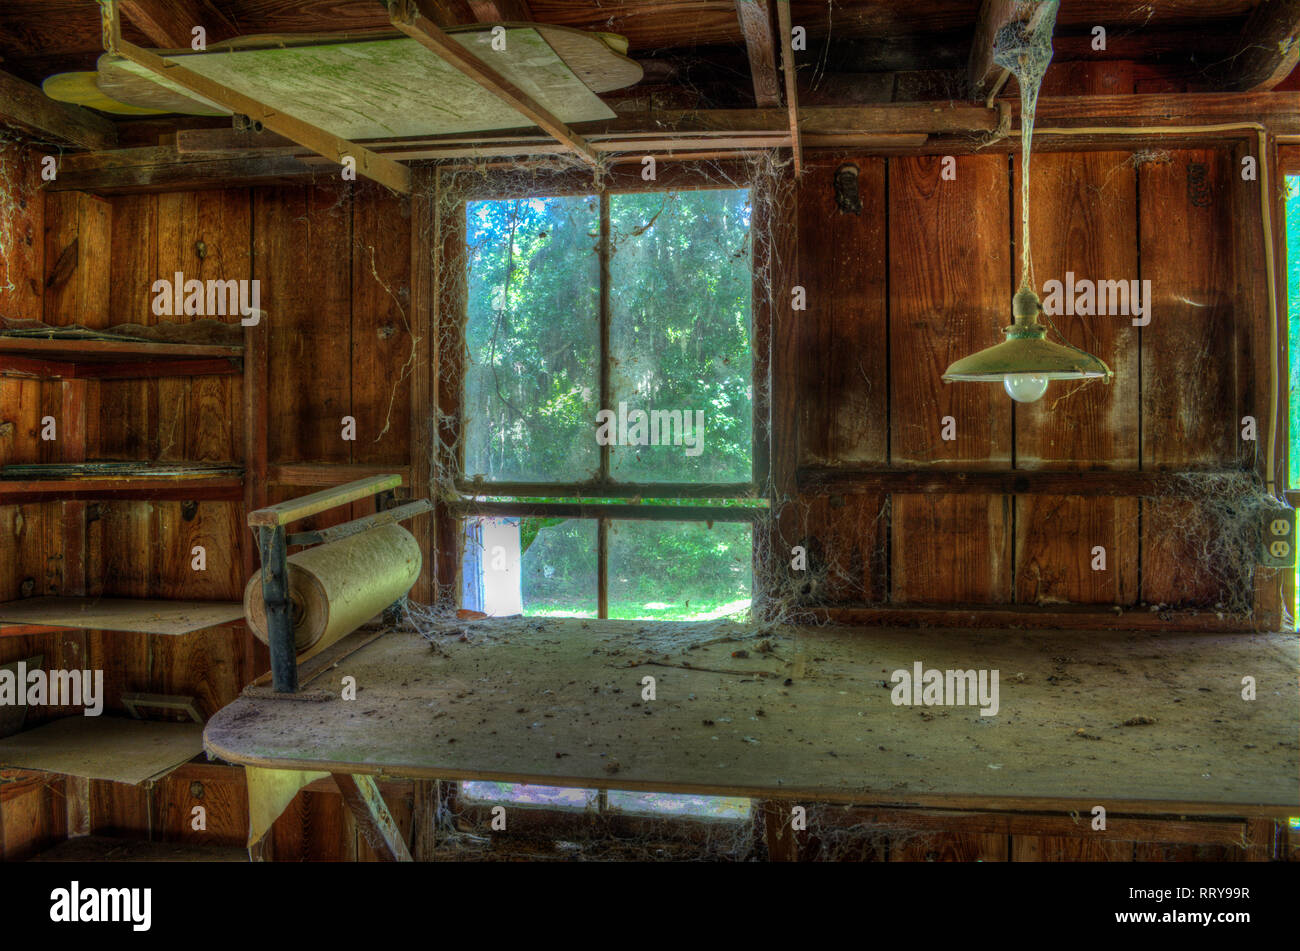 Looking out at a new day from the interior of a time worn dusty cobweb filled shop - Stock Image